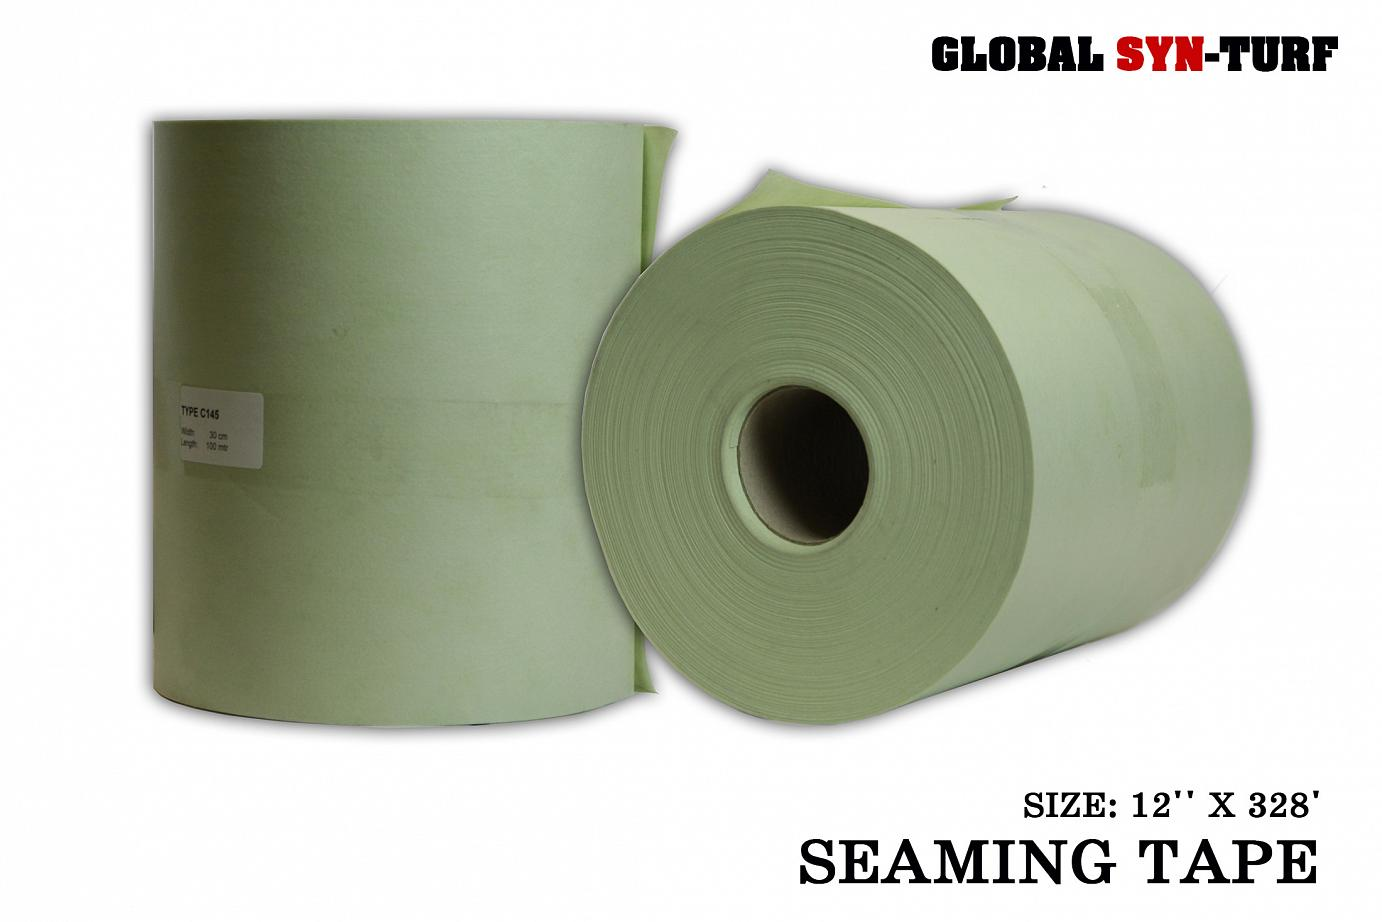 Seaming Tape to Glue Edges of Artificial Grass